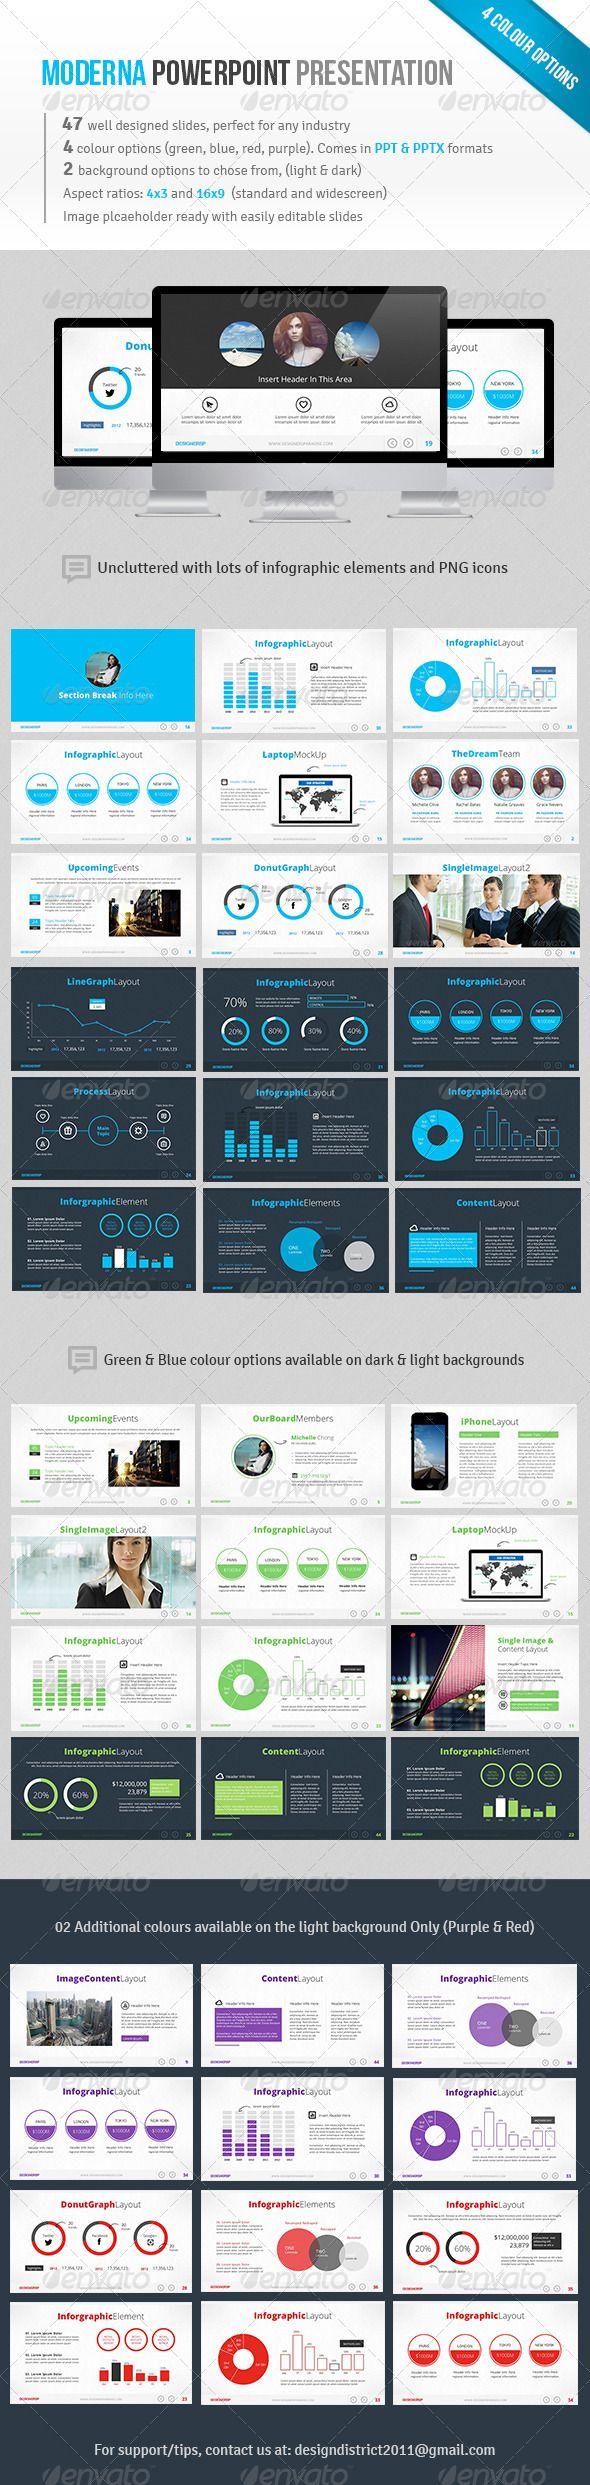 26 best powerpoint templates images on pinterest templates moderna powerpoint toneelgroepblik